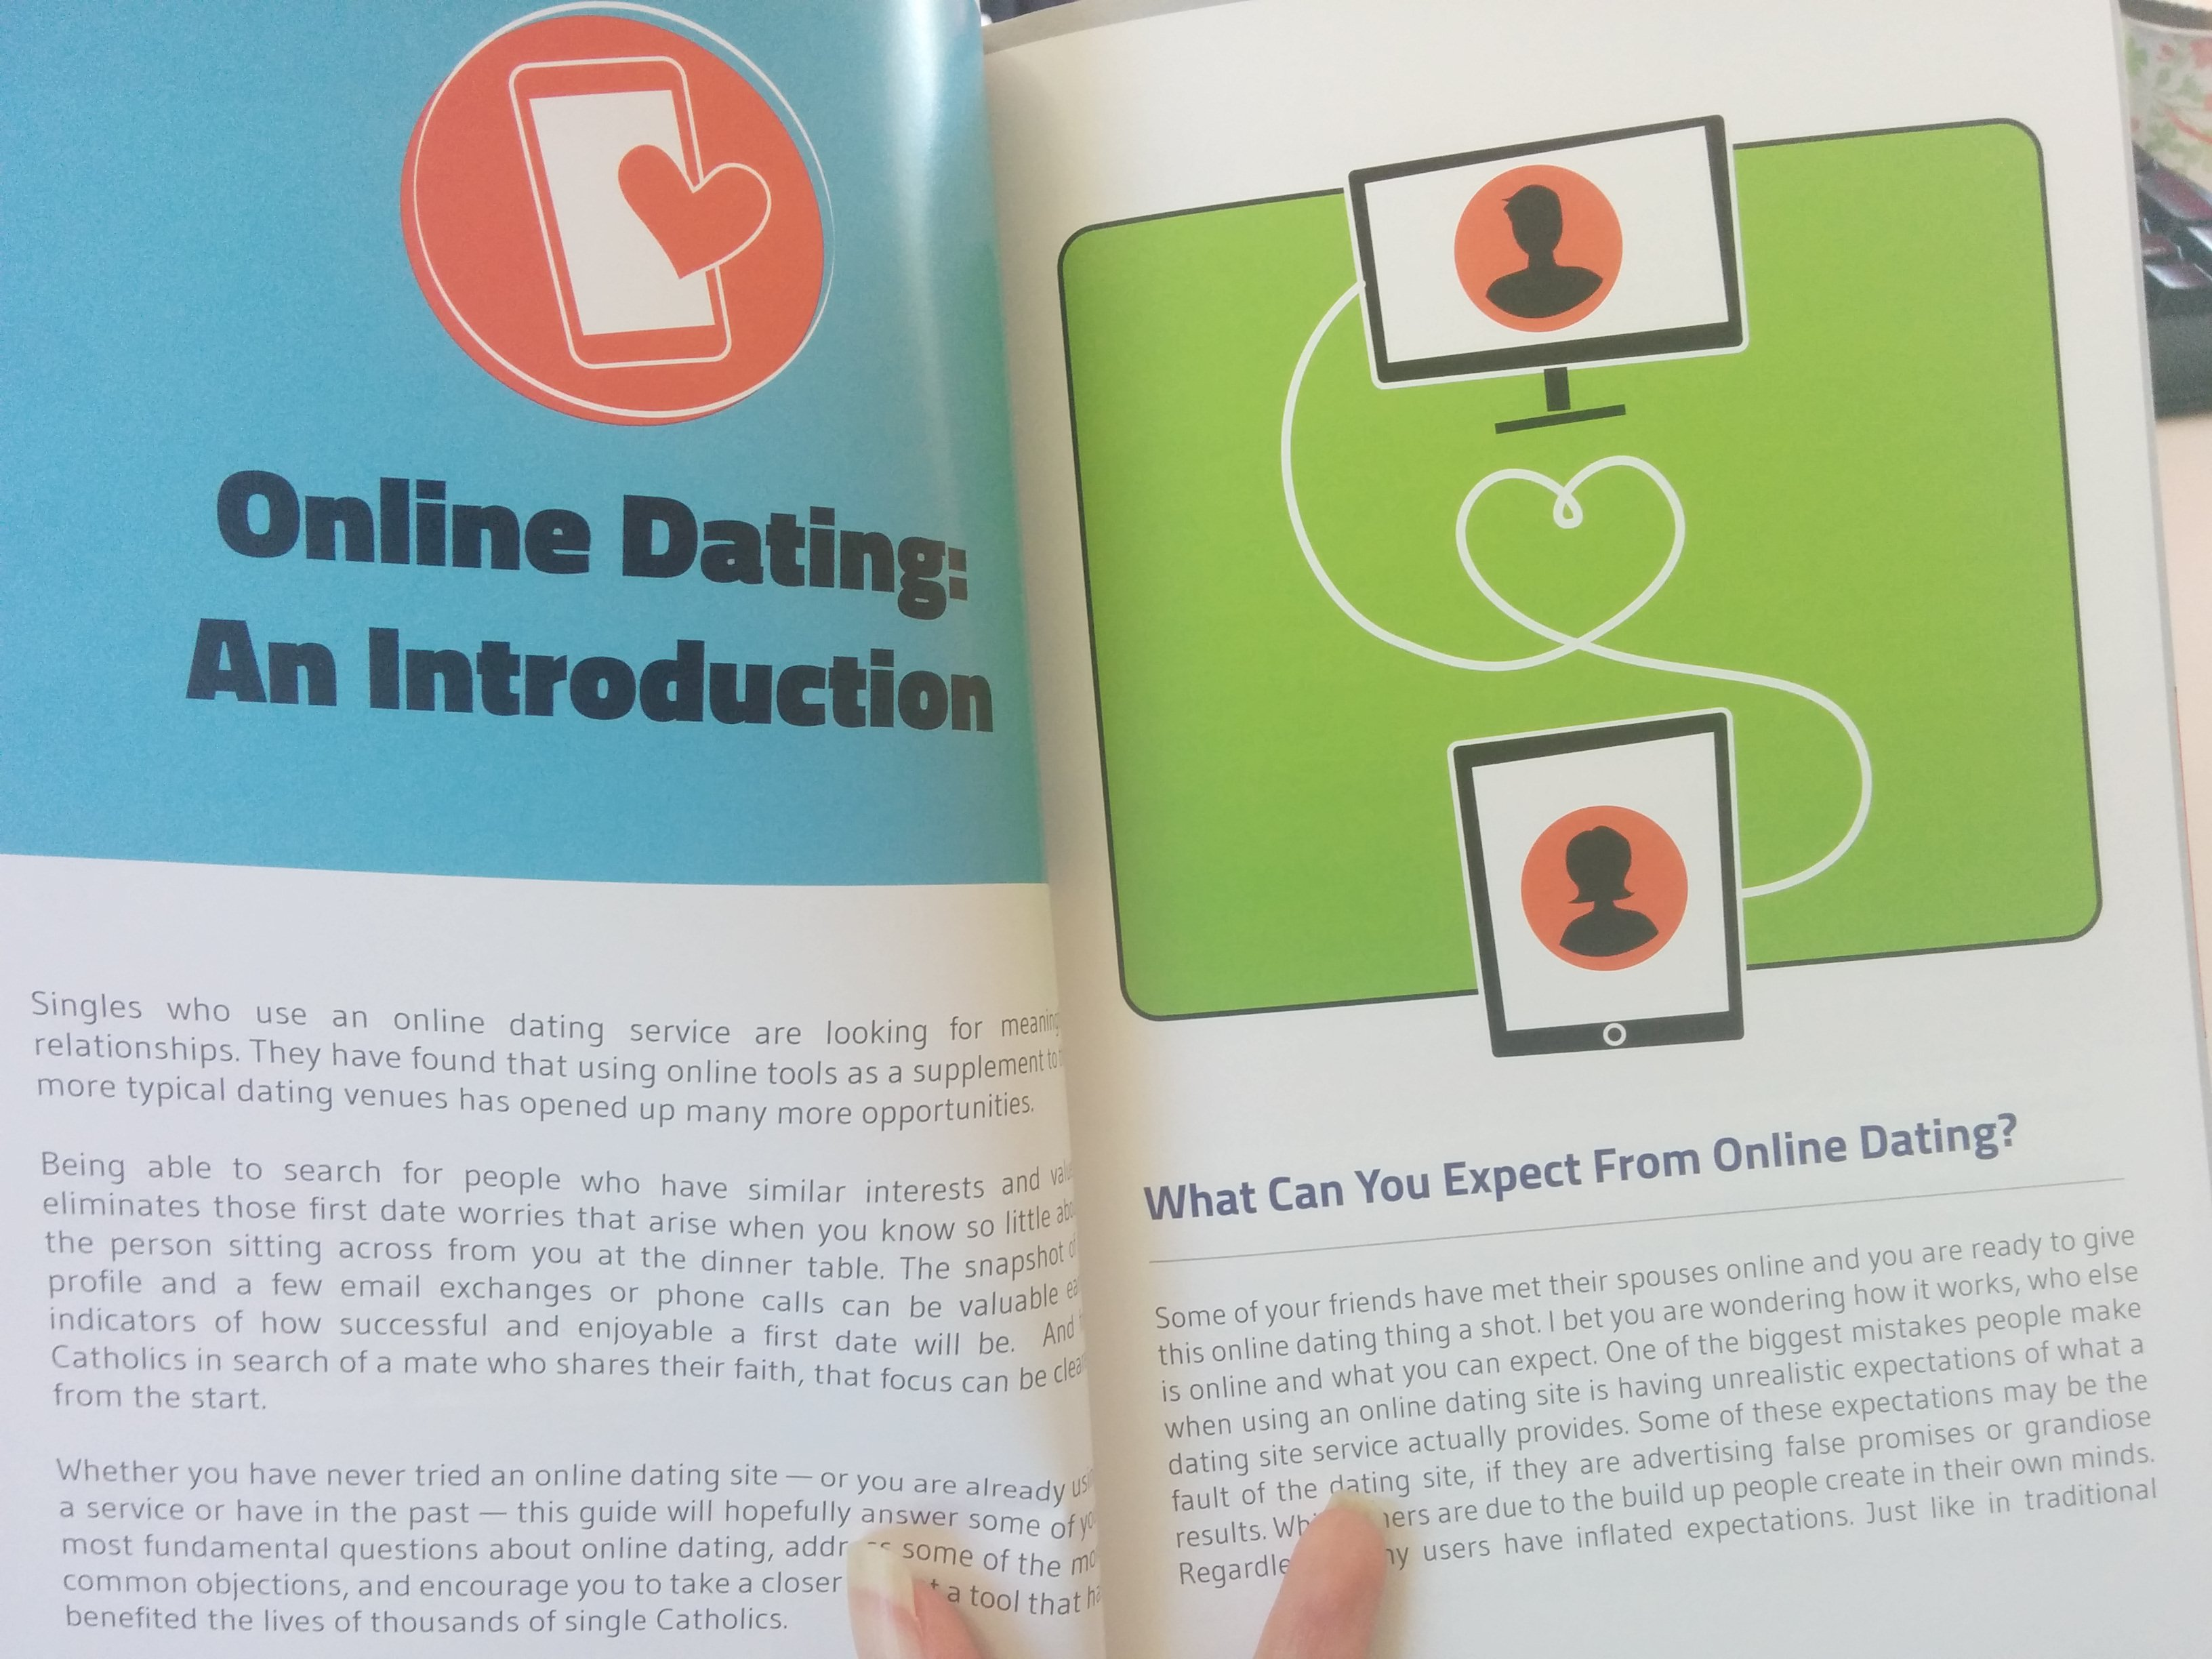 Consumer reviews of the online dating sites